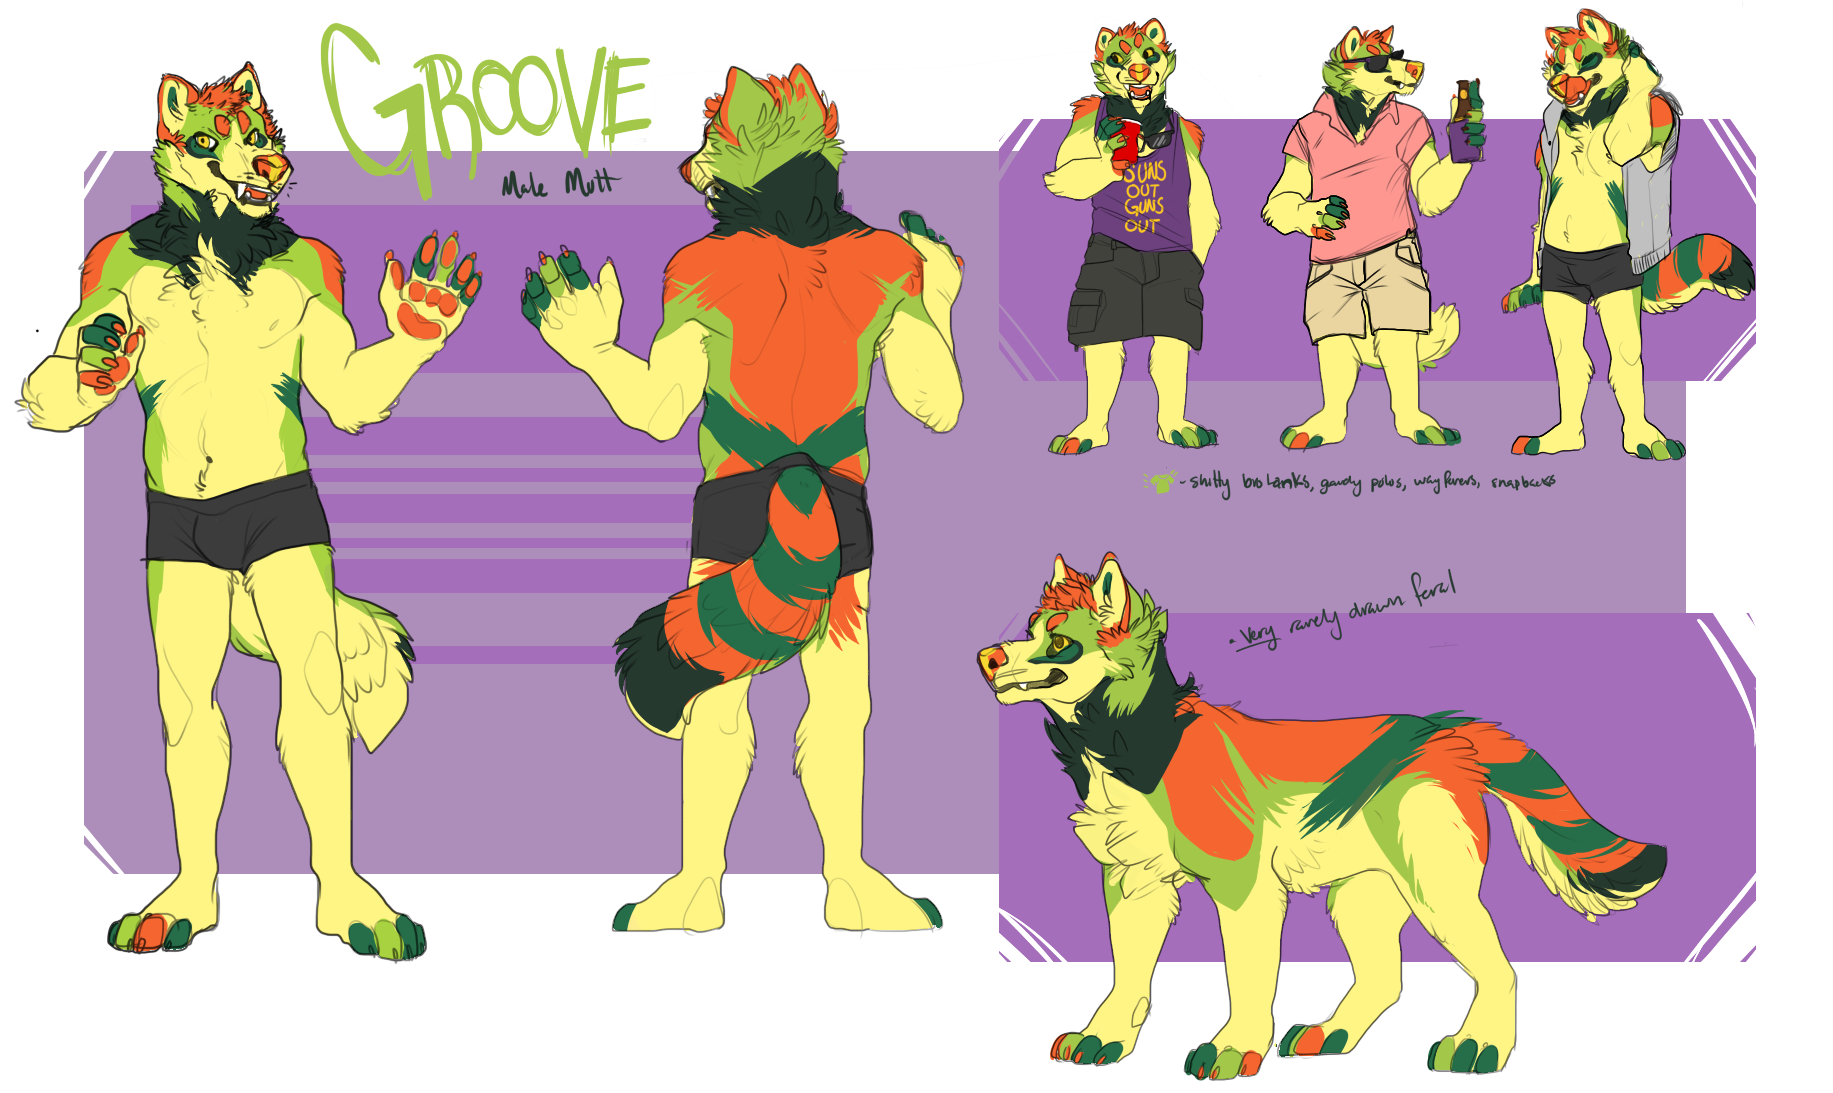 May 2015 - PainttoolSai  Character Sheet for a personal character